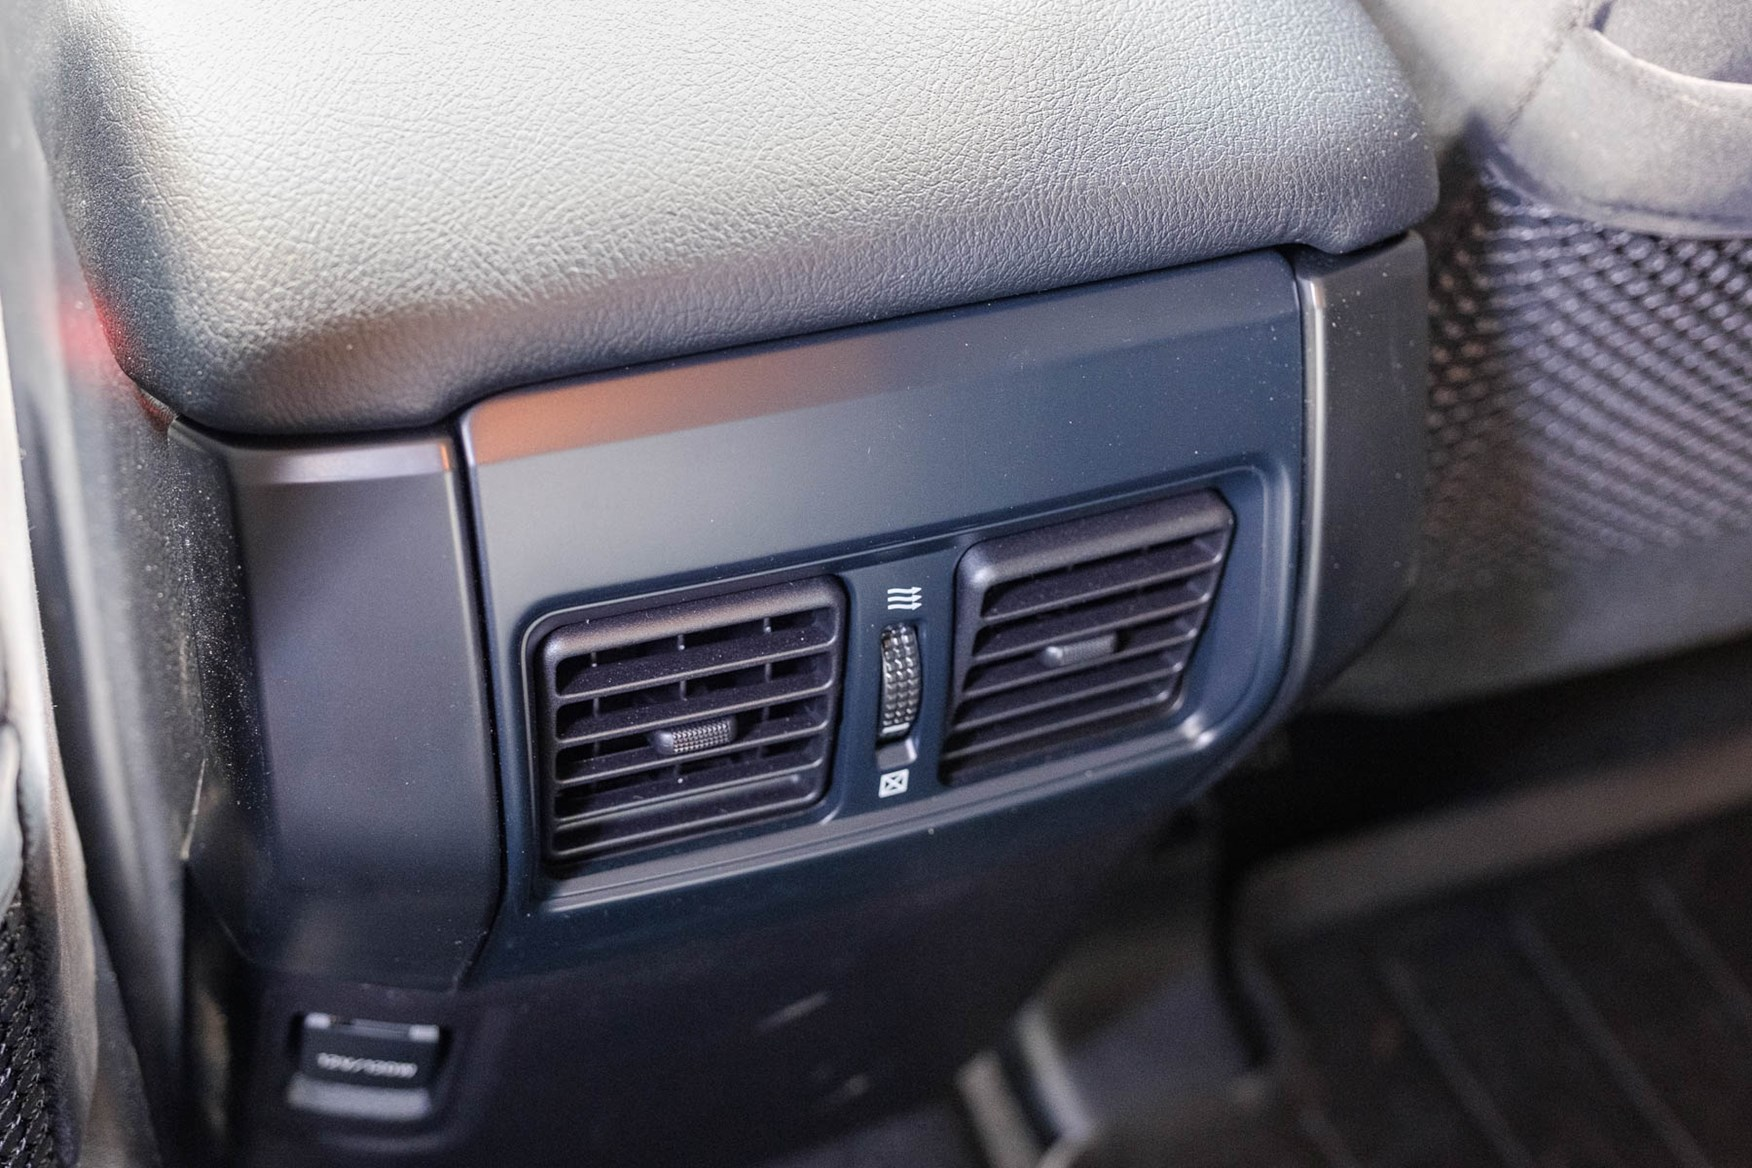 Toyota Land Cruiser Utility rear heating vents